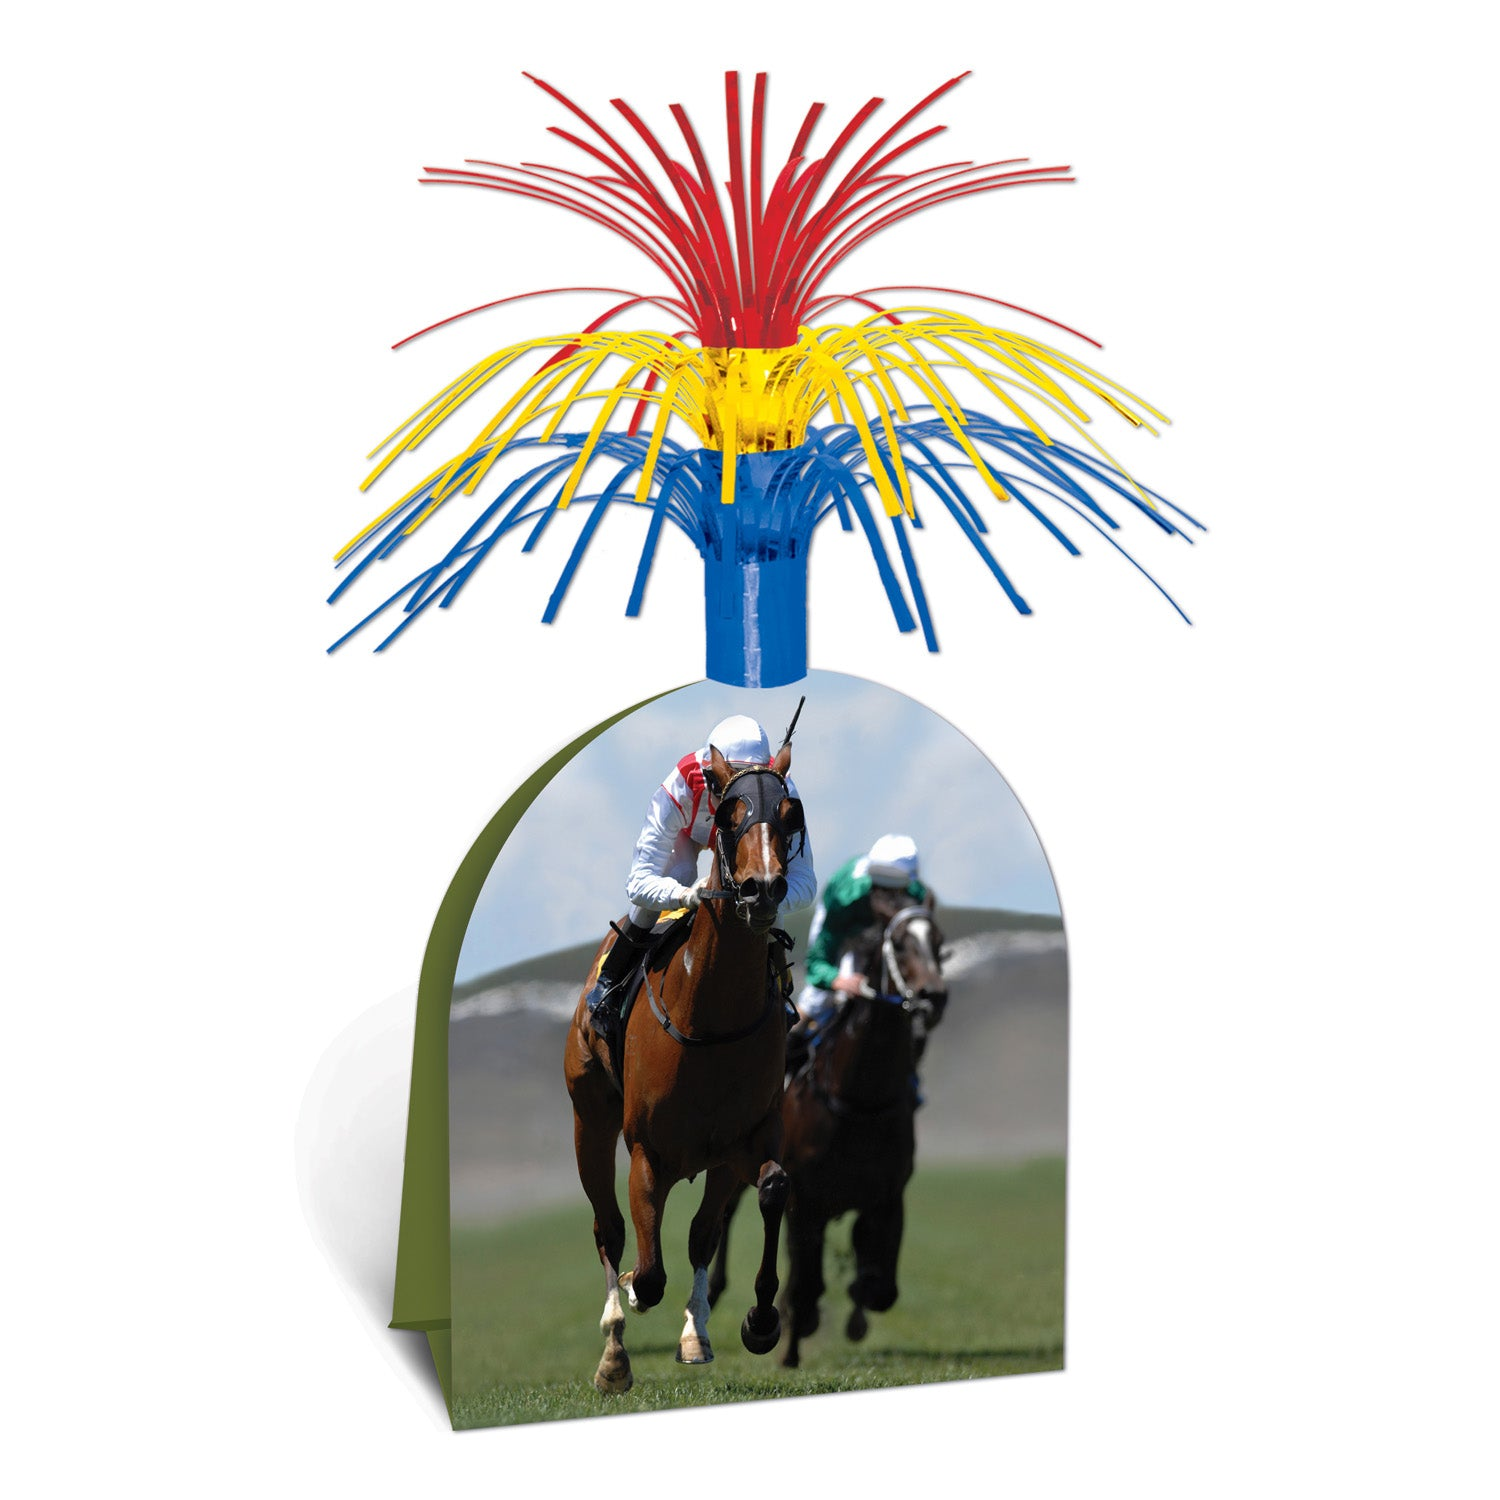 Horse Racing Centerpiece by Beistle - Derby Day Theme Decorations